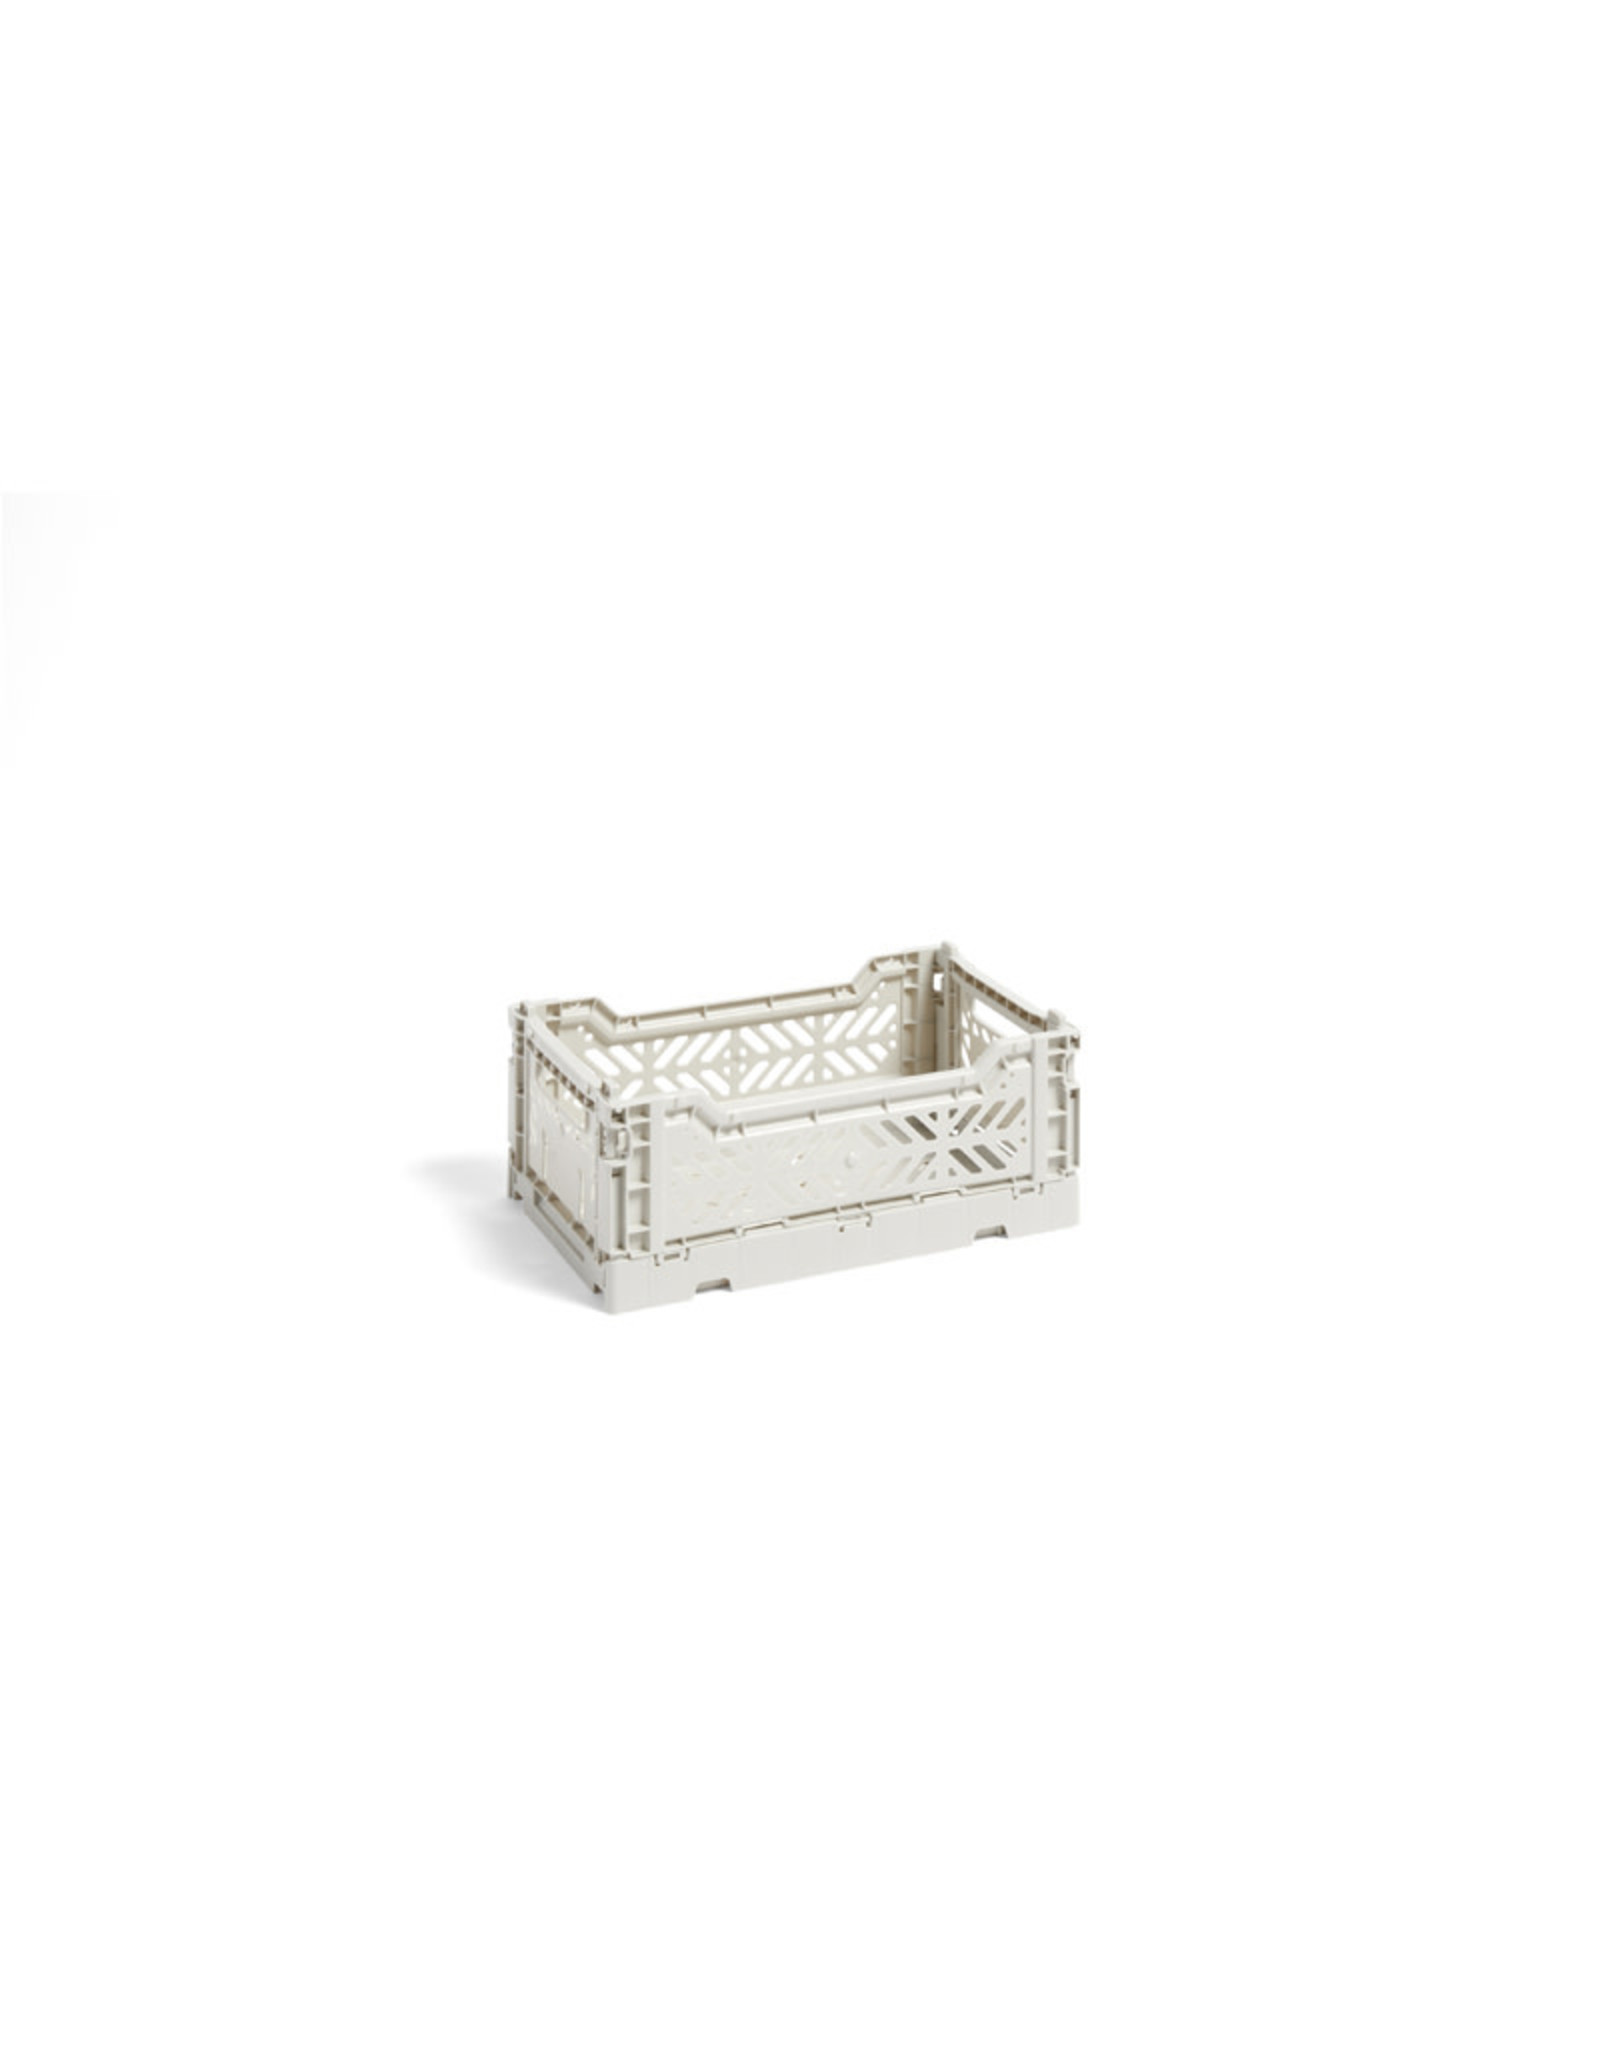 HAY HAY COLOUR CRATE S 4L LIGHT GREY